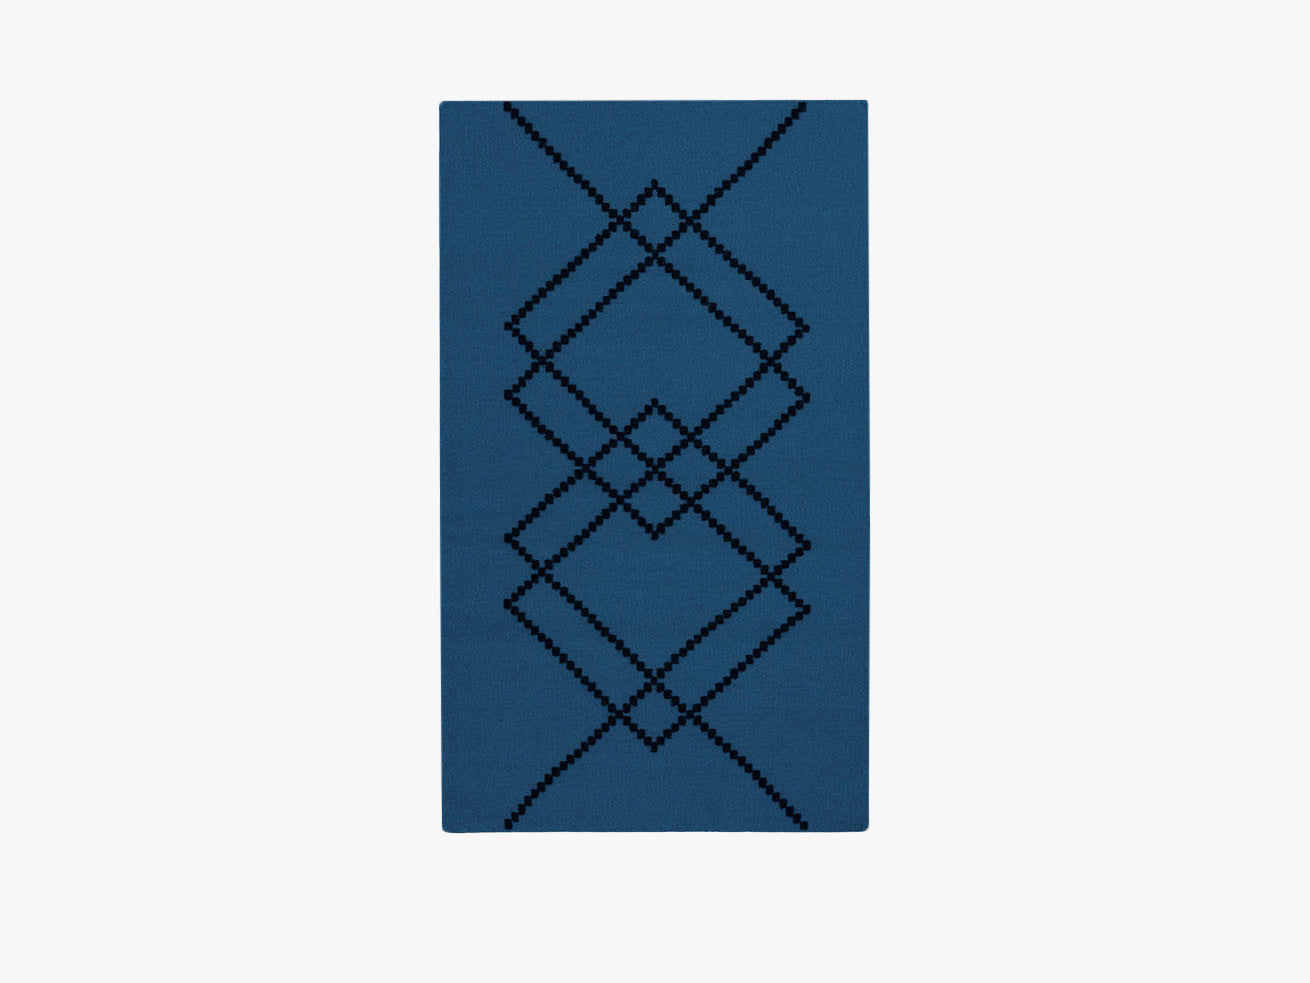 Rug Borg - 80x140 - Royal Blue fra Louise Roe